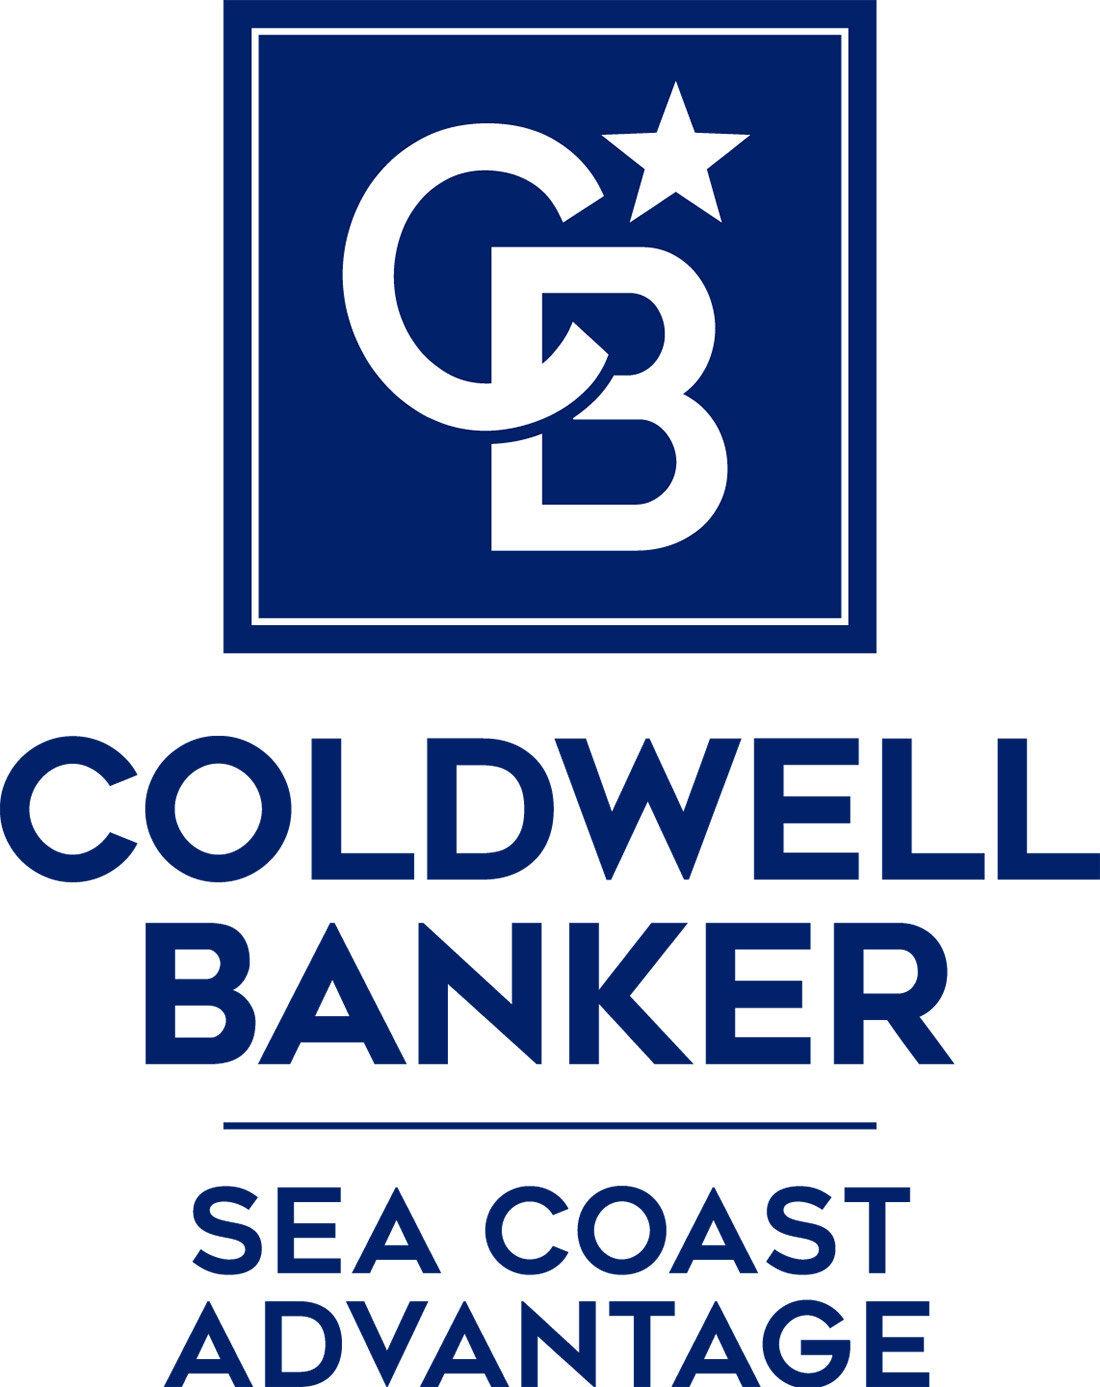 Jonathan Ennis - Coldwell Banker Sea Coast Advantage Realty Logo